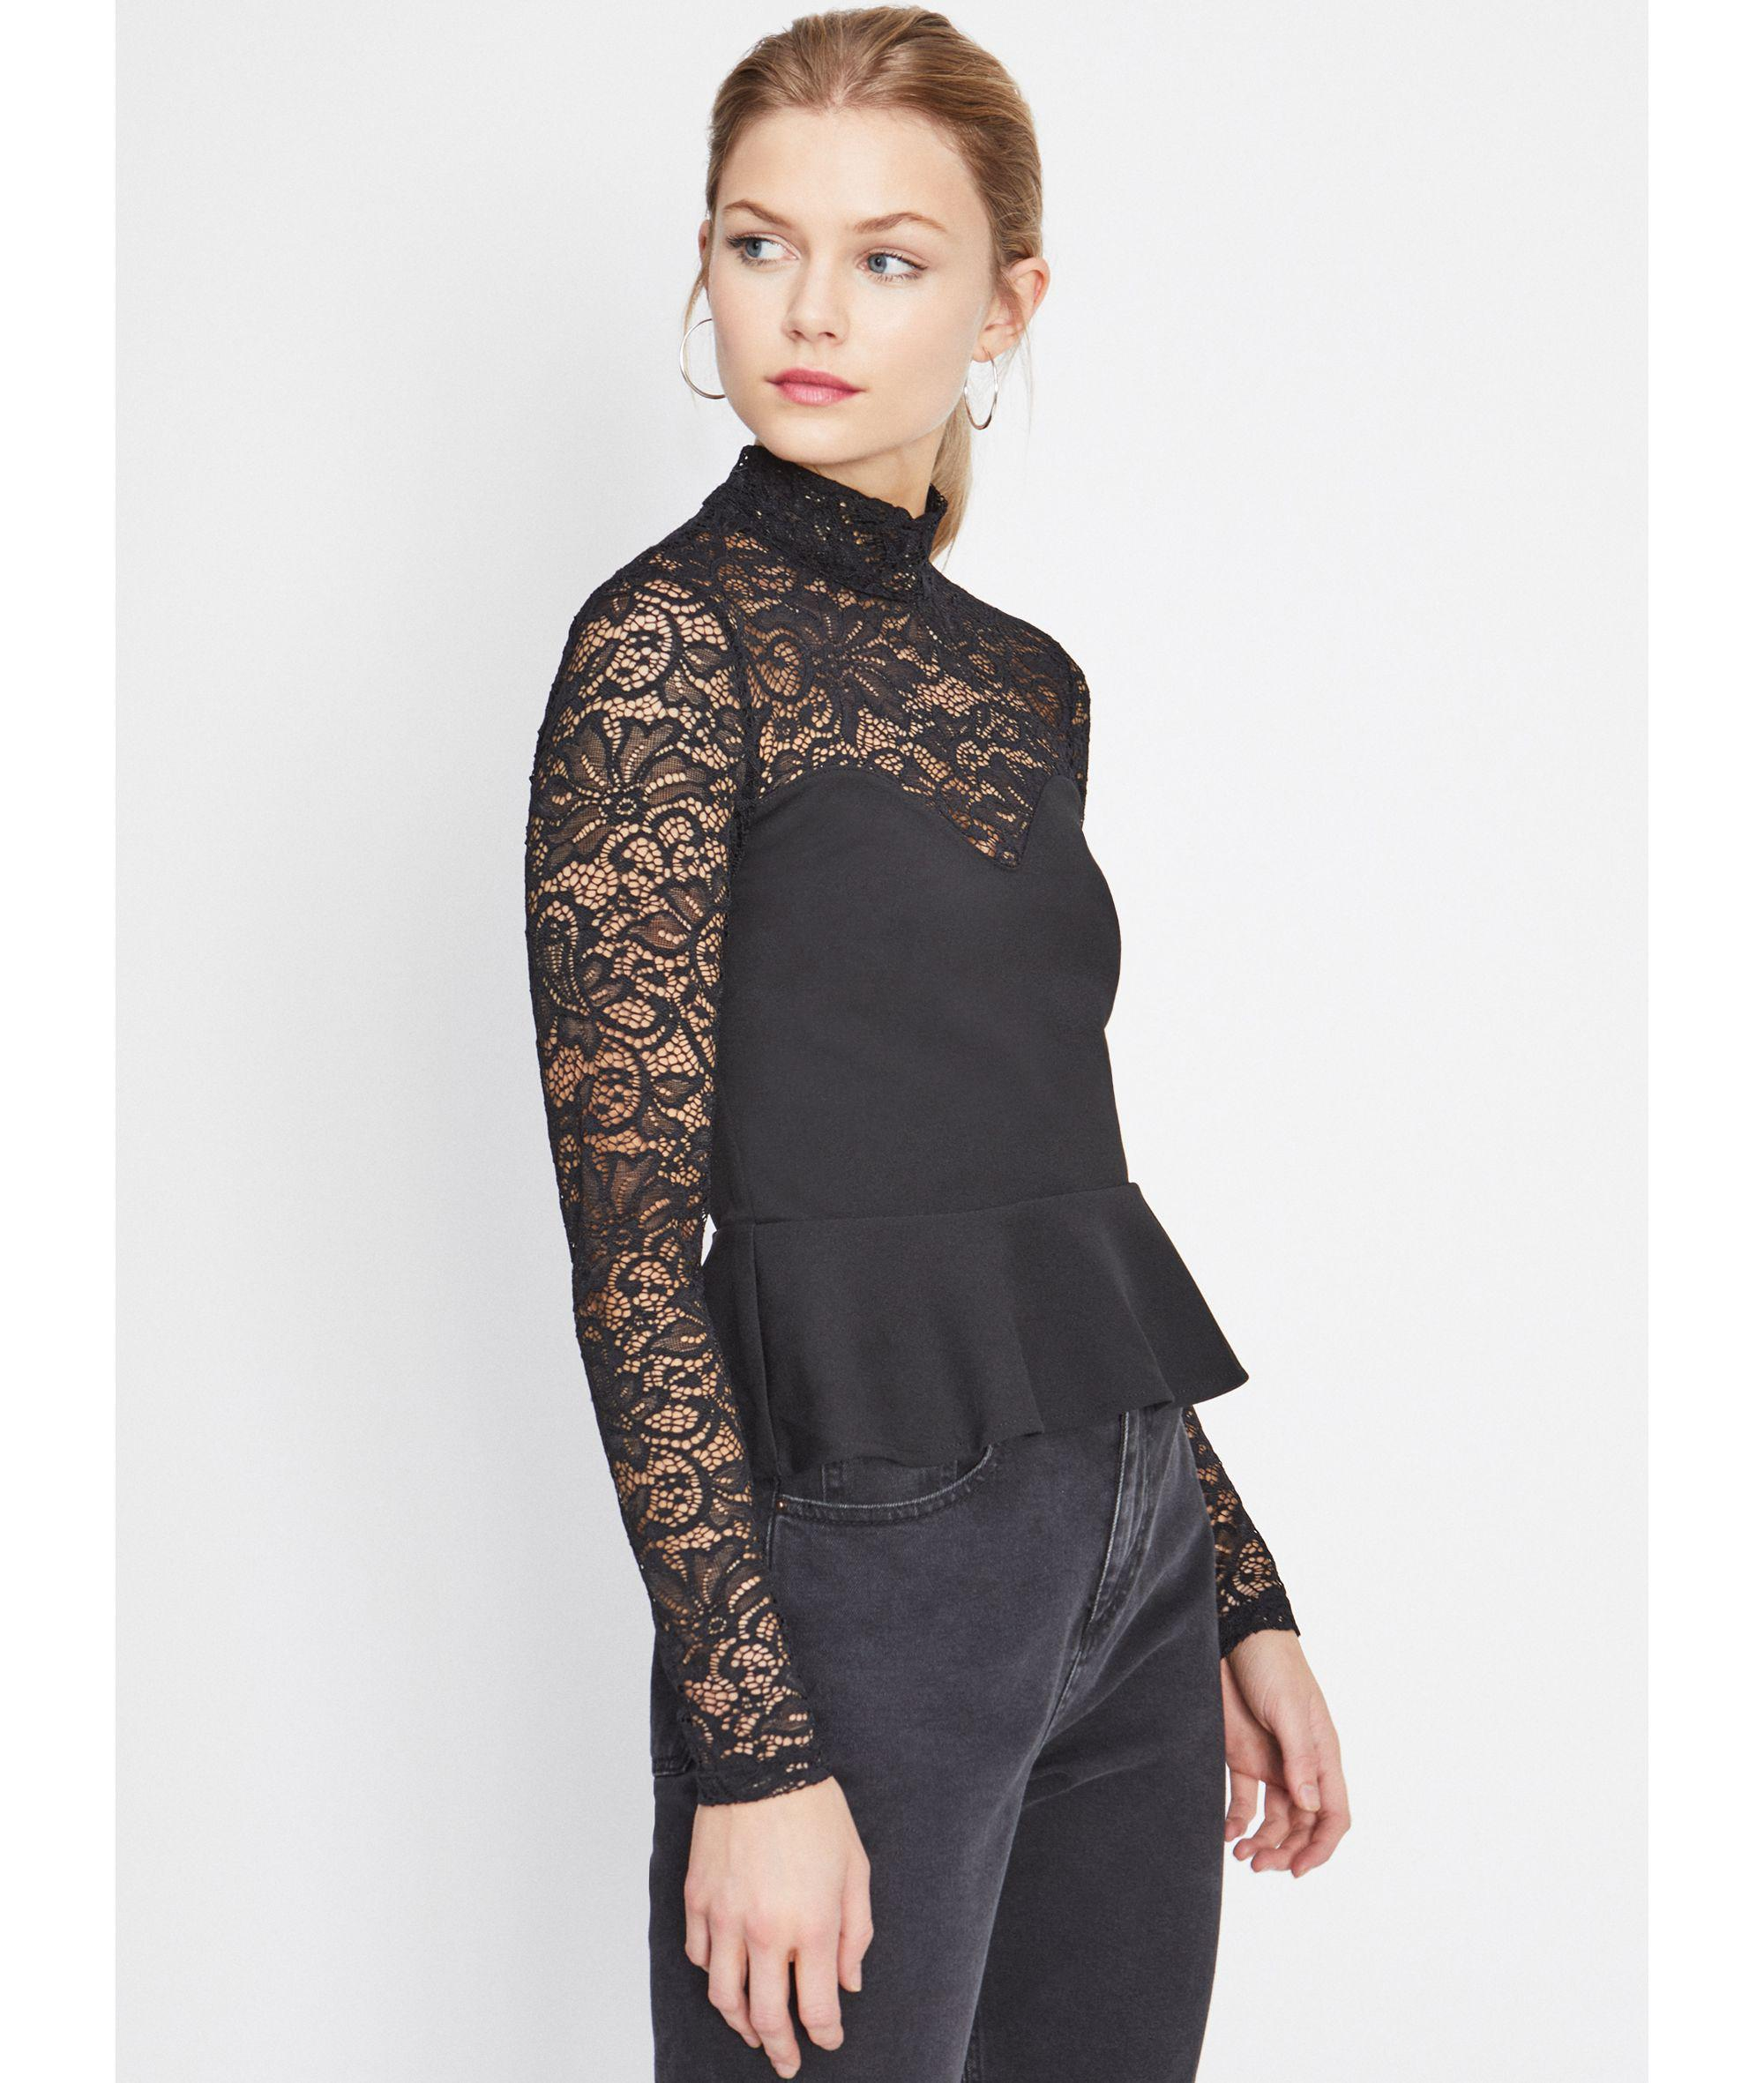 bec39bc0e2bf1 Miss Selfridge Black Lace Peplum Top in Black - Lyst